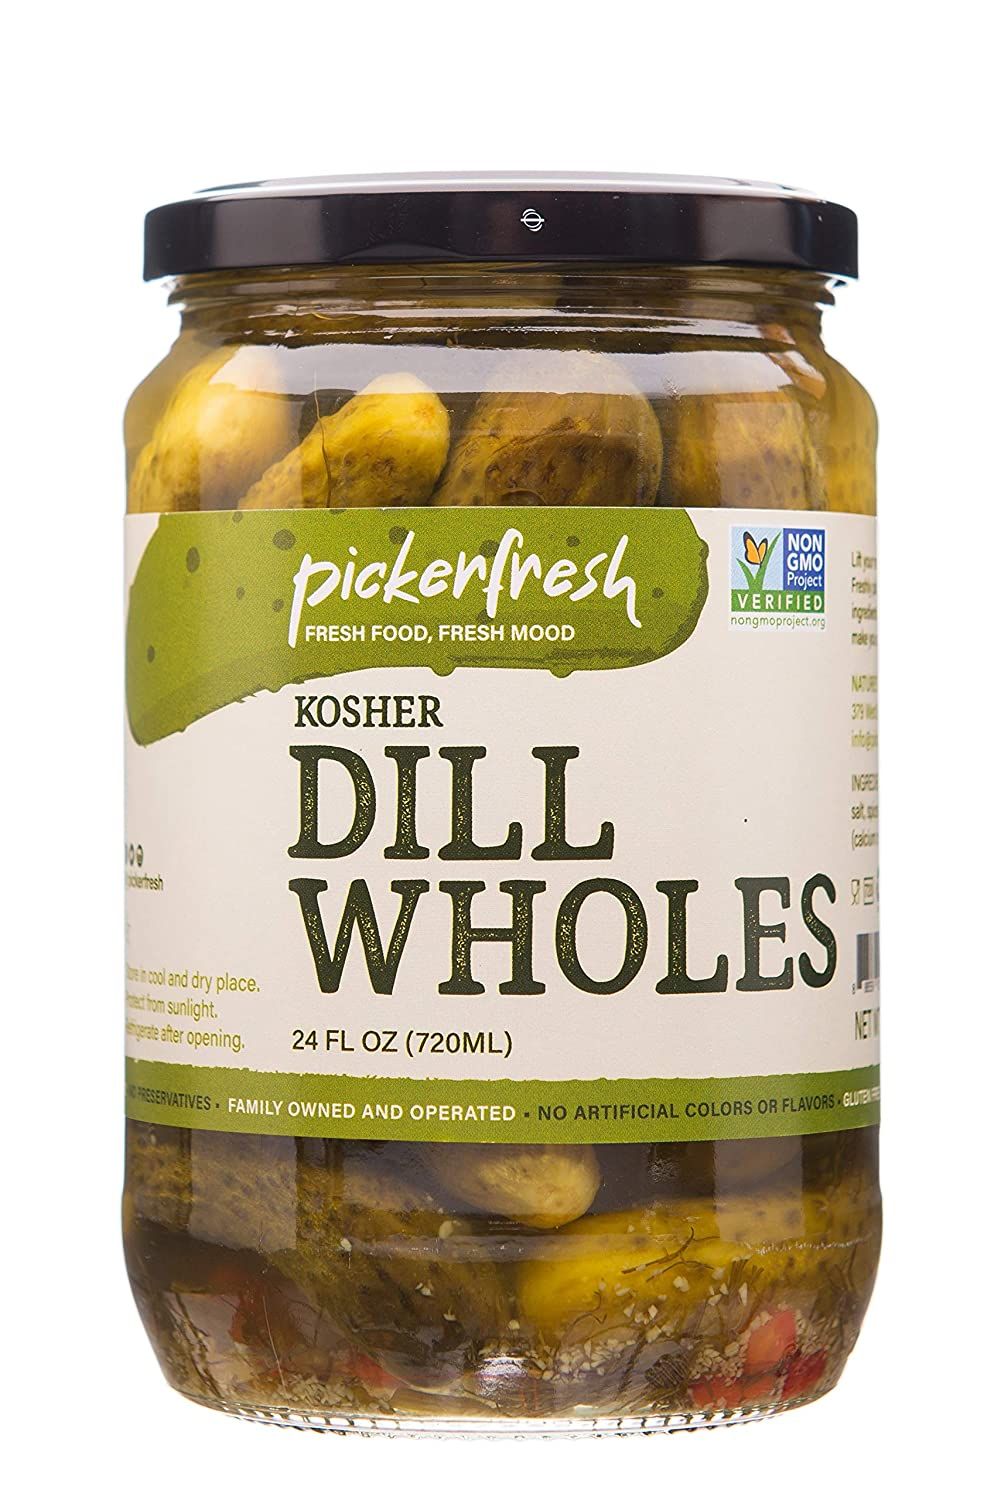 Pickerfresh Kosher Dill Wholes - Elegant Now free shipping Whole Pickles Simple Large In